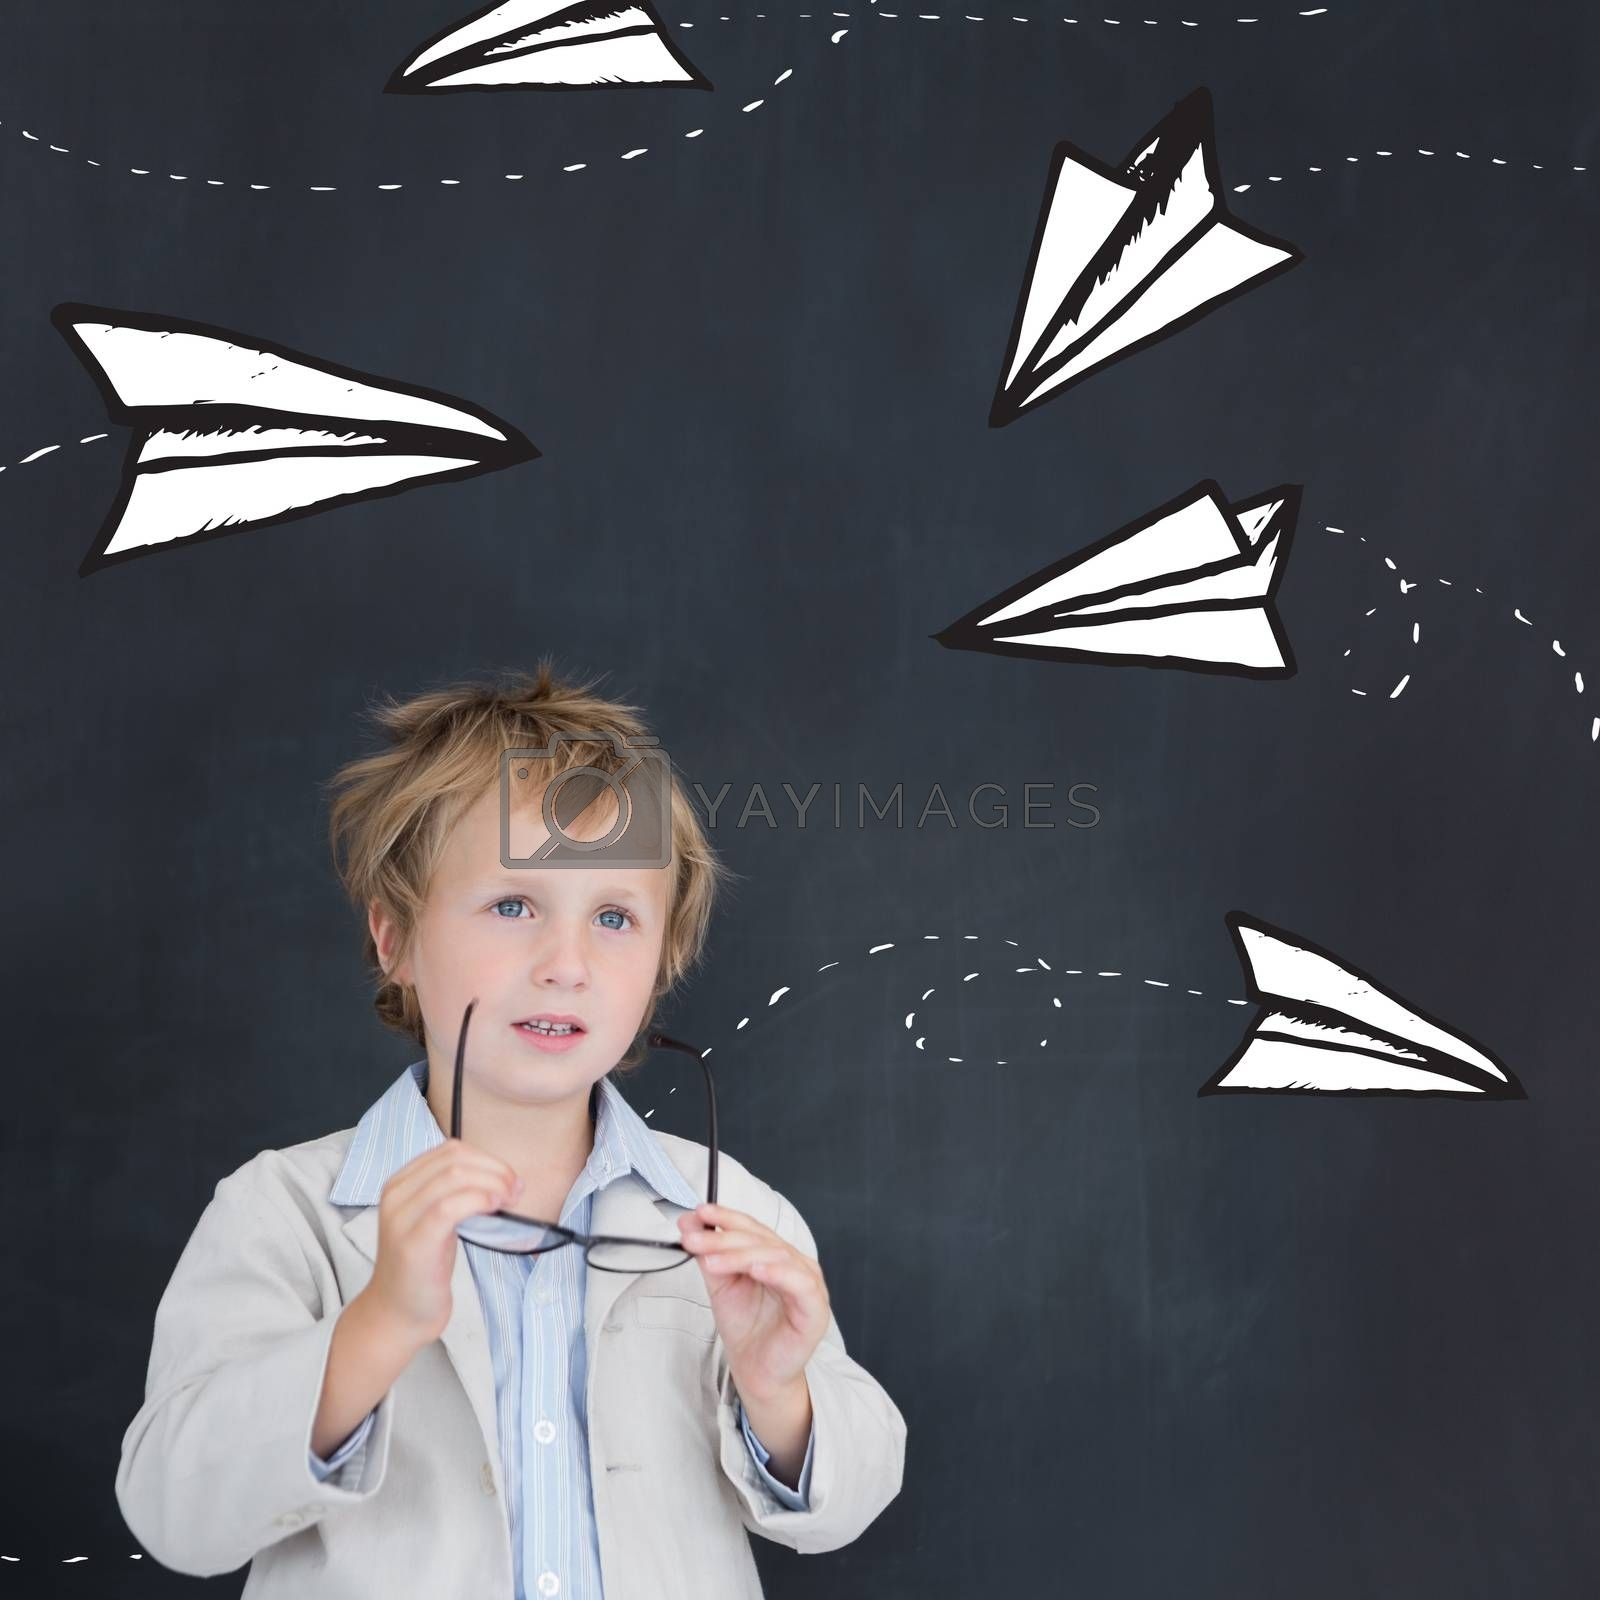 Cute pupil holding glasses against paper airplanes doodle